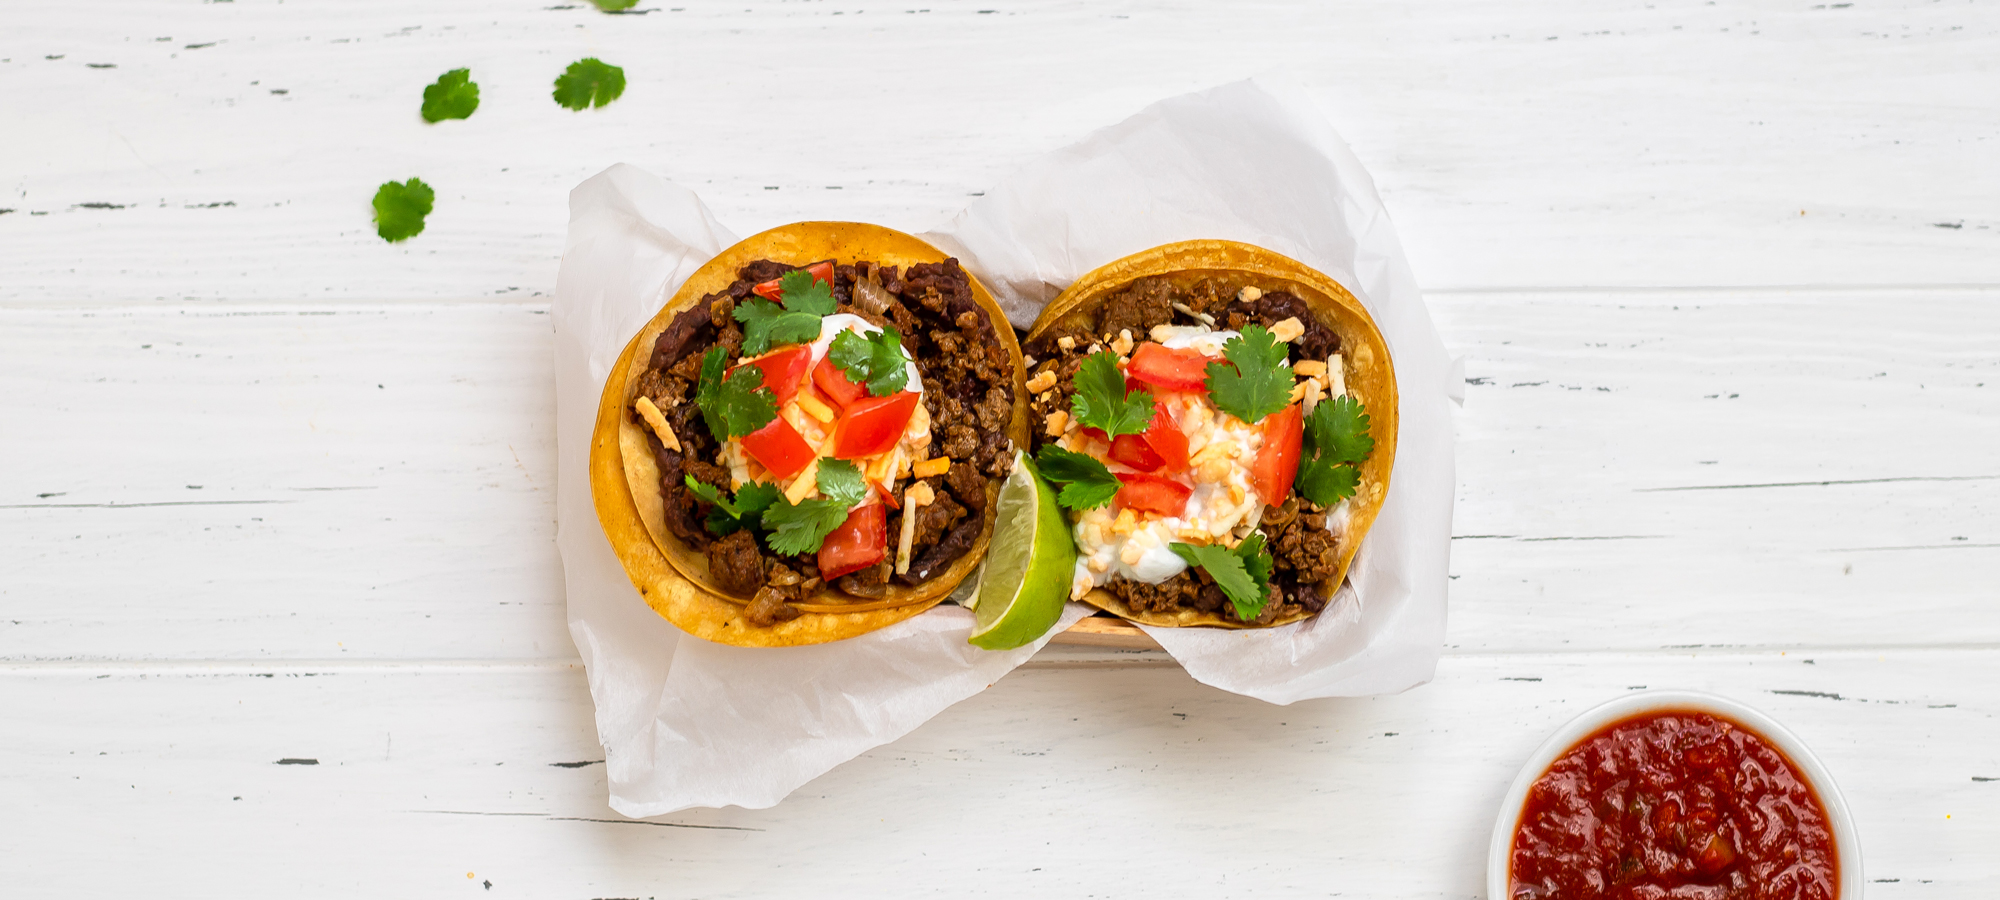 Vegan Impossible beef tacos